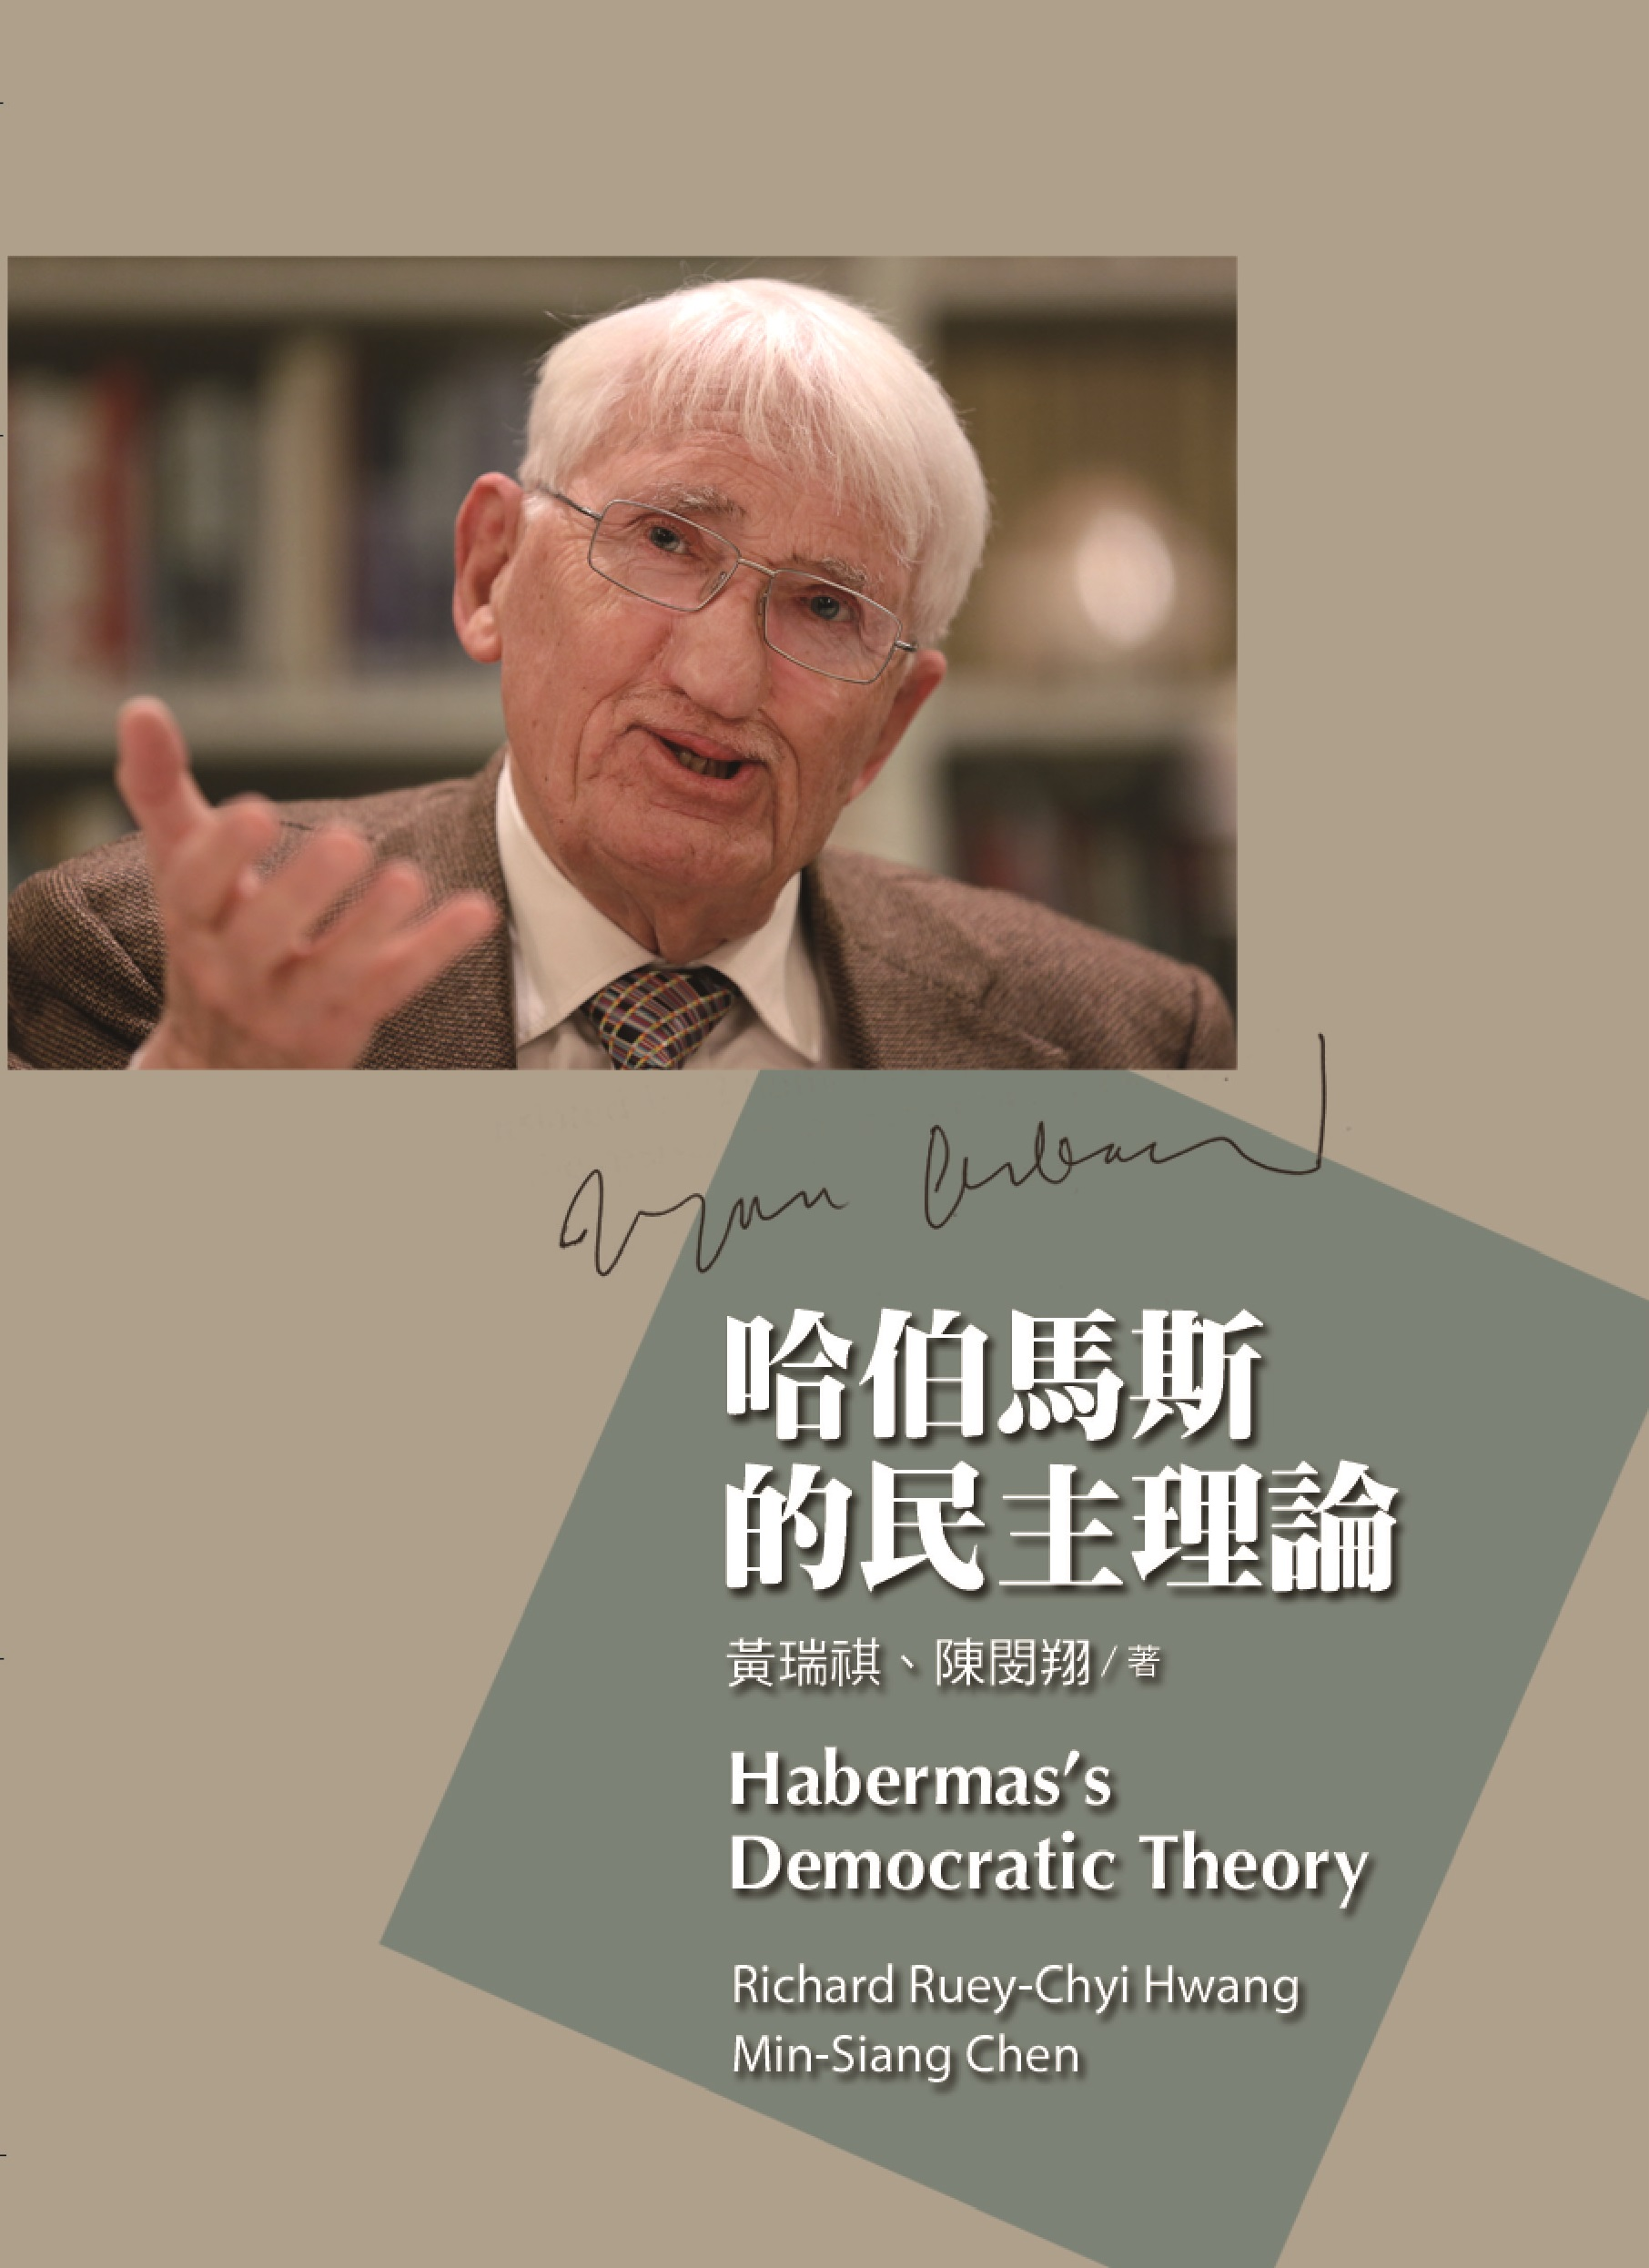 哈伯馬斯的民主理論(Habermas's Democratic Theory)